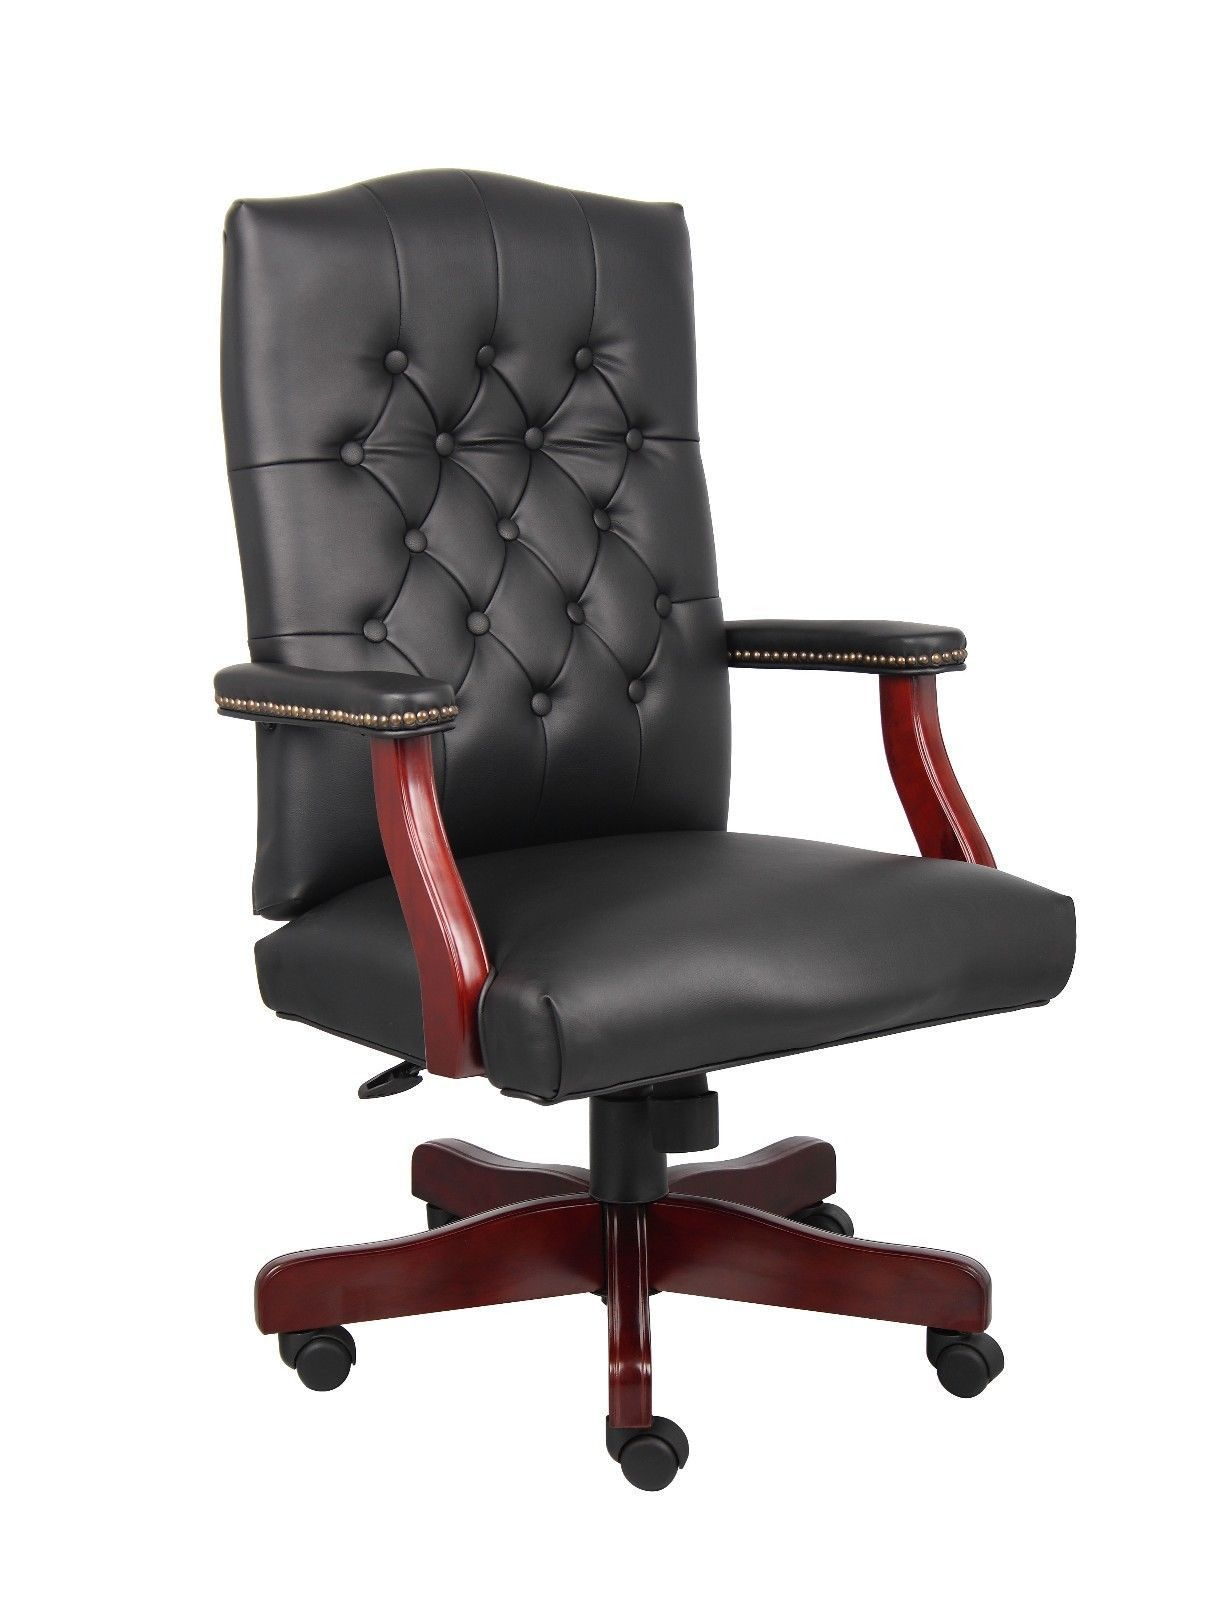 Wood conference chairs - Mid Back Traditional Tufted Leather Executive Office Chair Black By Timeoffice